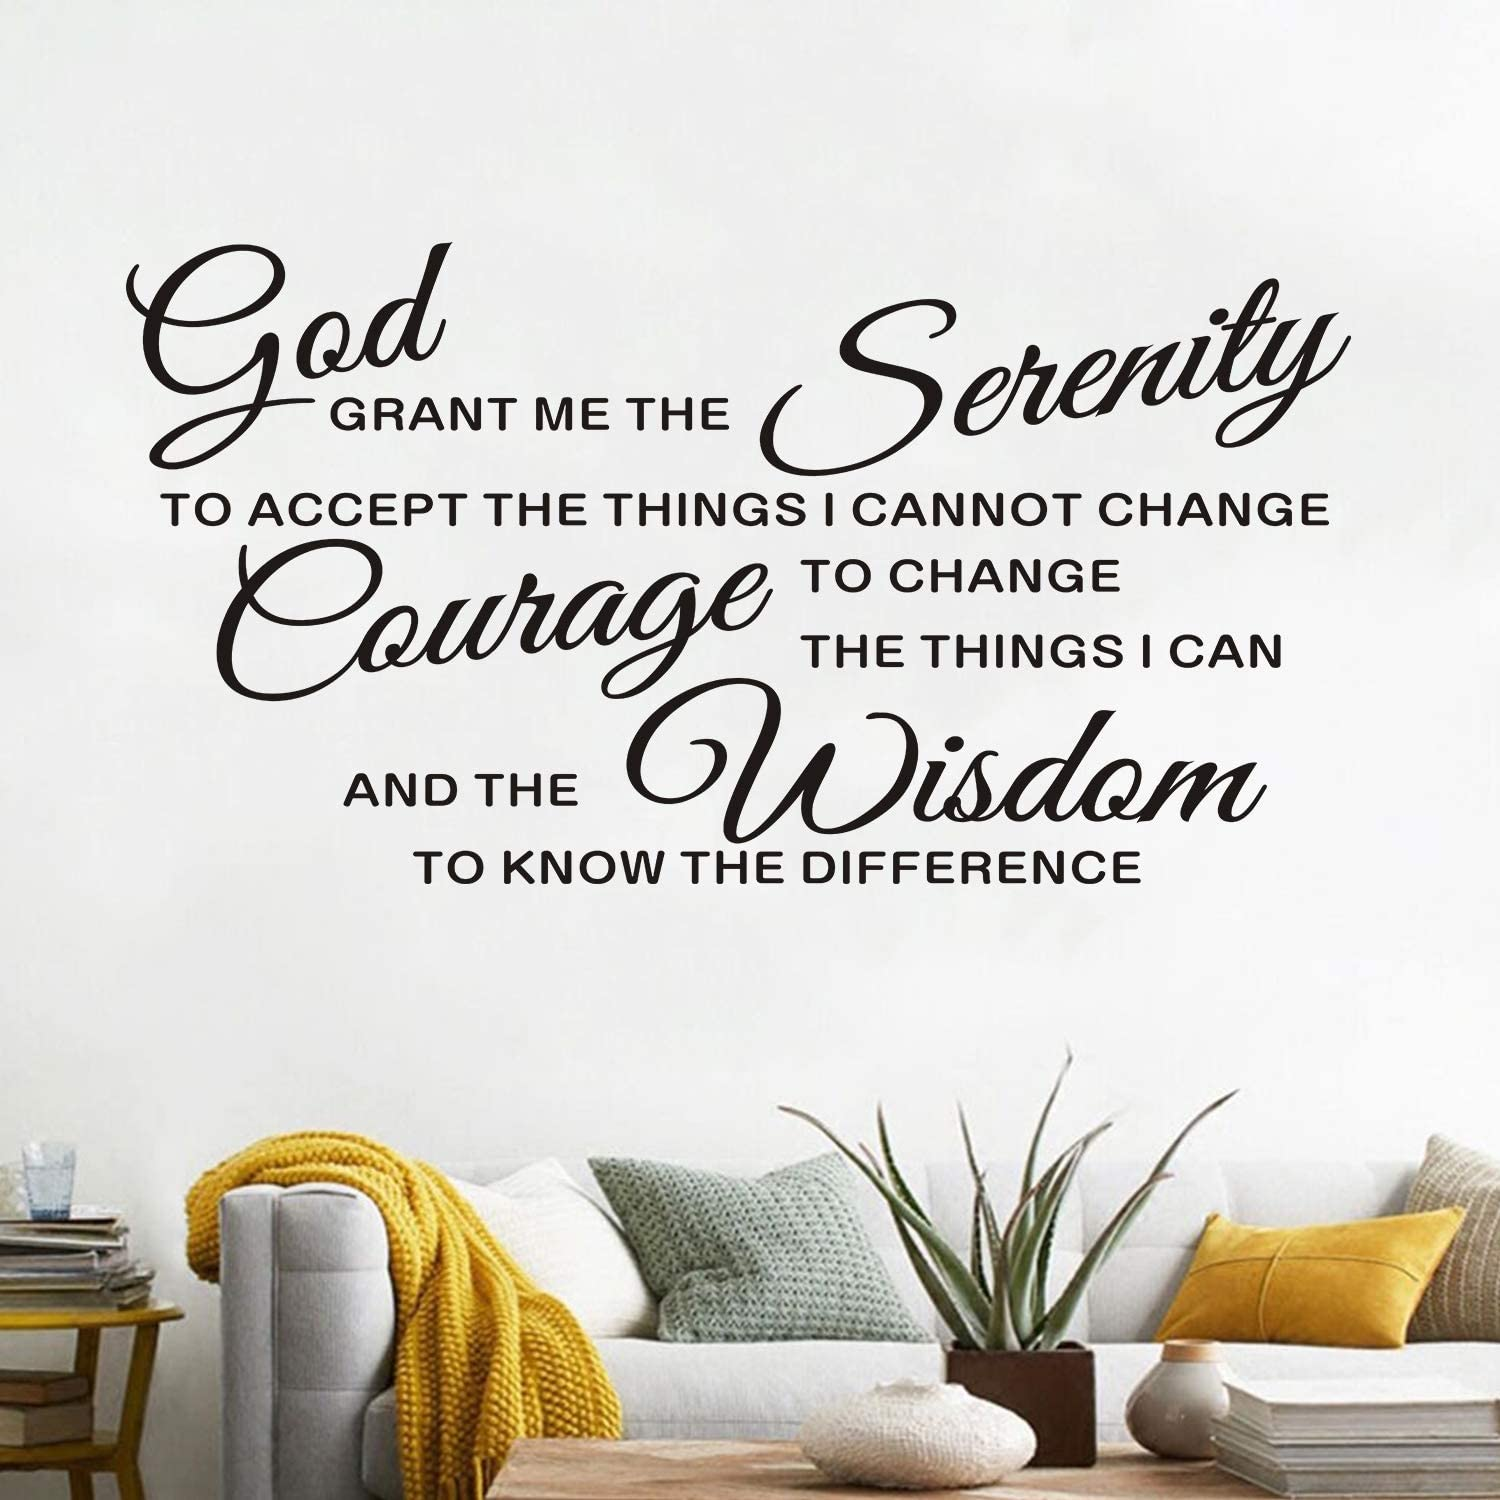 AnFigure Wall Decals for Living Room, Quotes Wall Decal, Bedroom Family Christian Bible Verse Religious Faith Biblical Jesus Bathroom Home Art Decor Vinyl Stickers God Grant Serenity Prayer 21